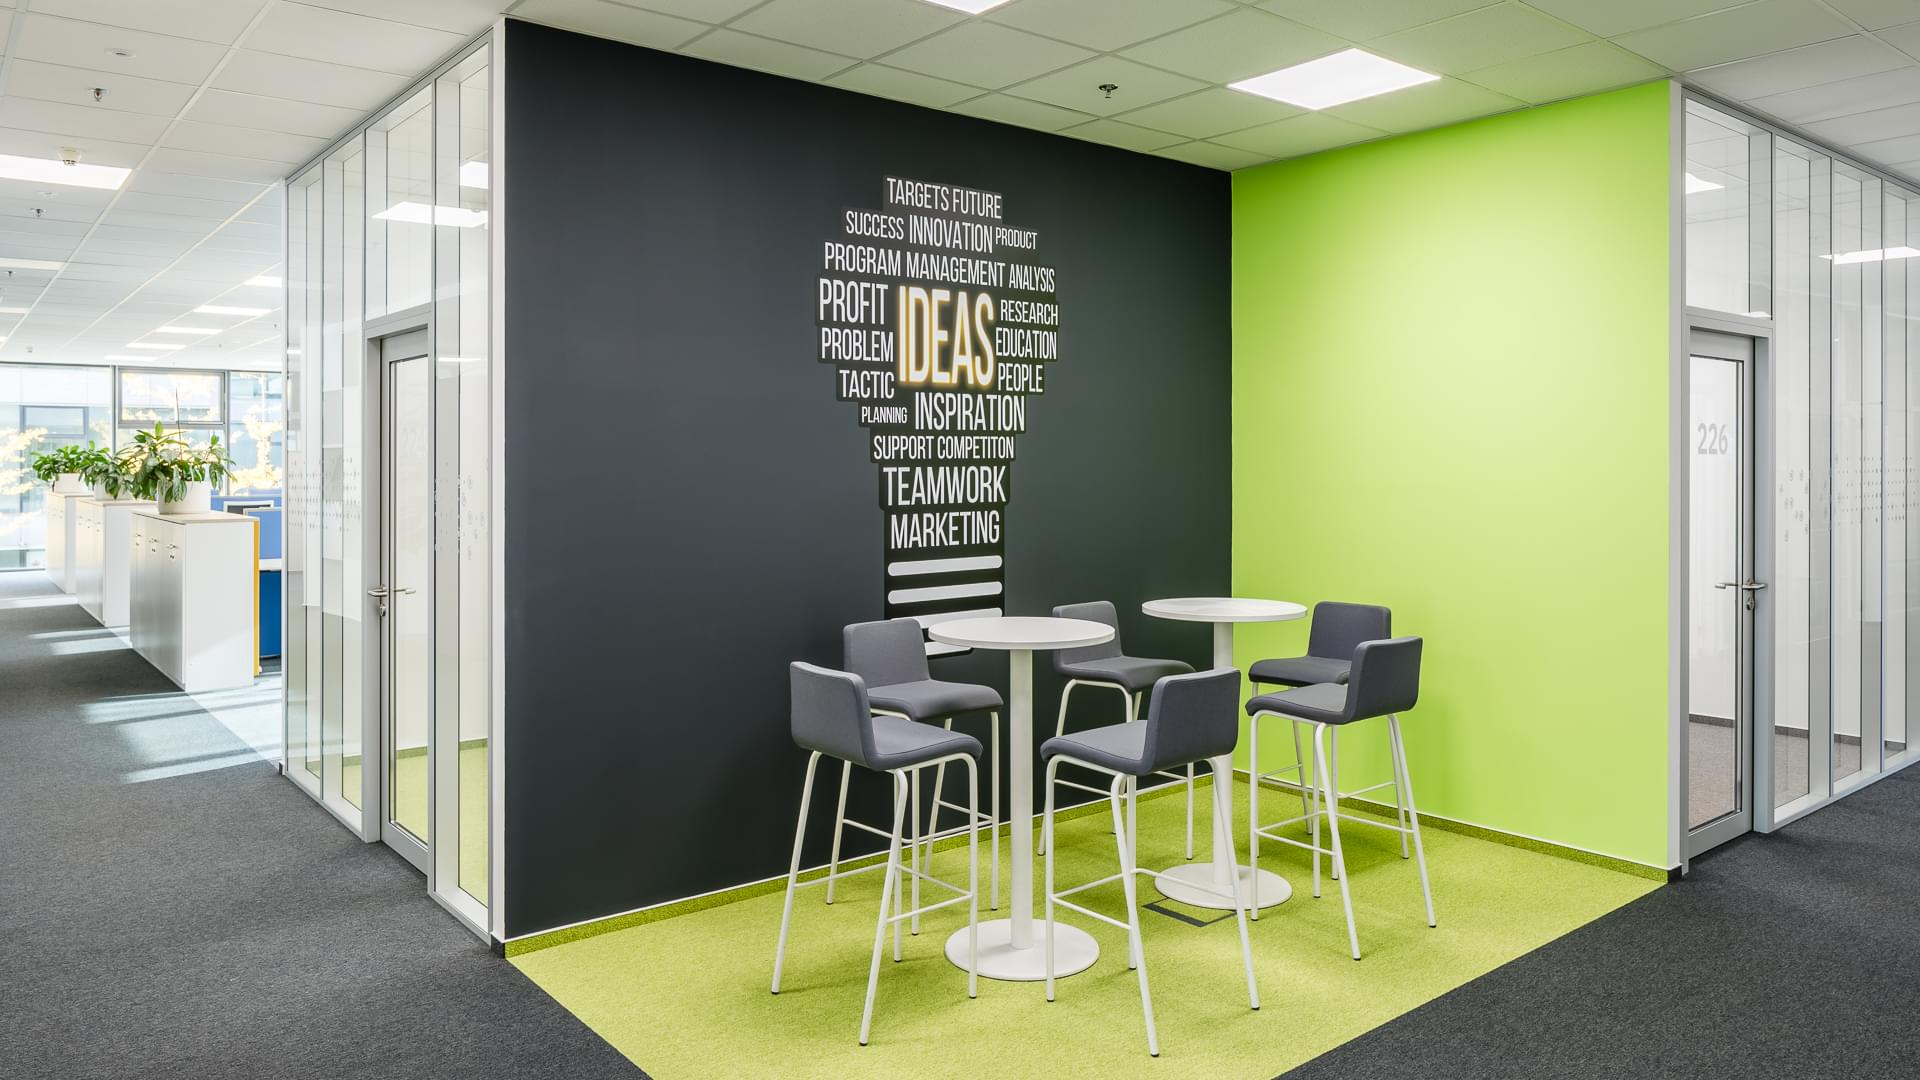 green-interior-wallpaper-on-the-wall-pole-wall-gray-bar-chair-CAPEXUS-office-design office-office CAPEXUS-IBM-IBM office